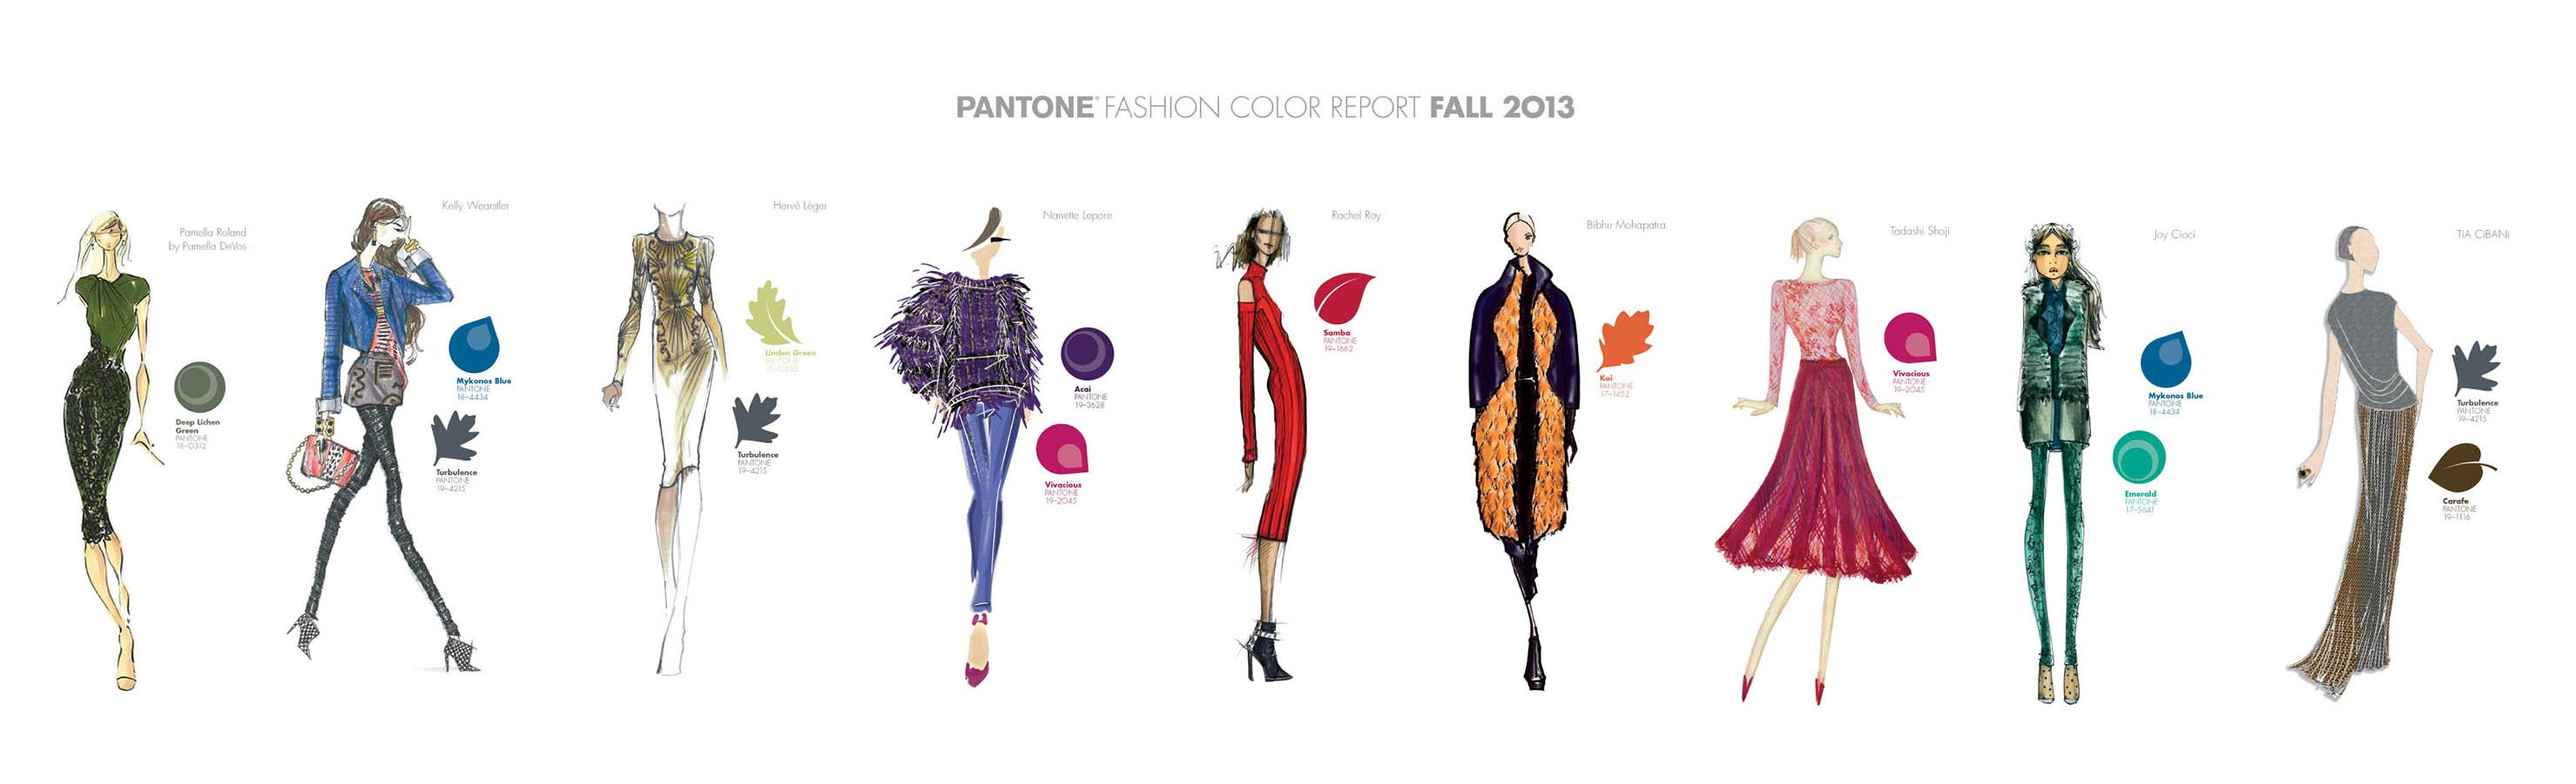 Pantone Color Forecast 2017 Fall 2018 Pantone Fashion Color Report My Blog